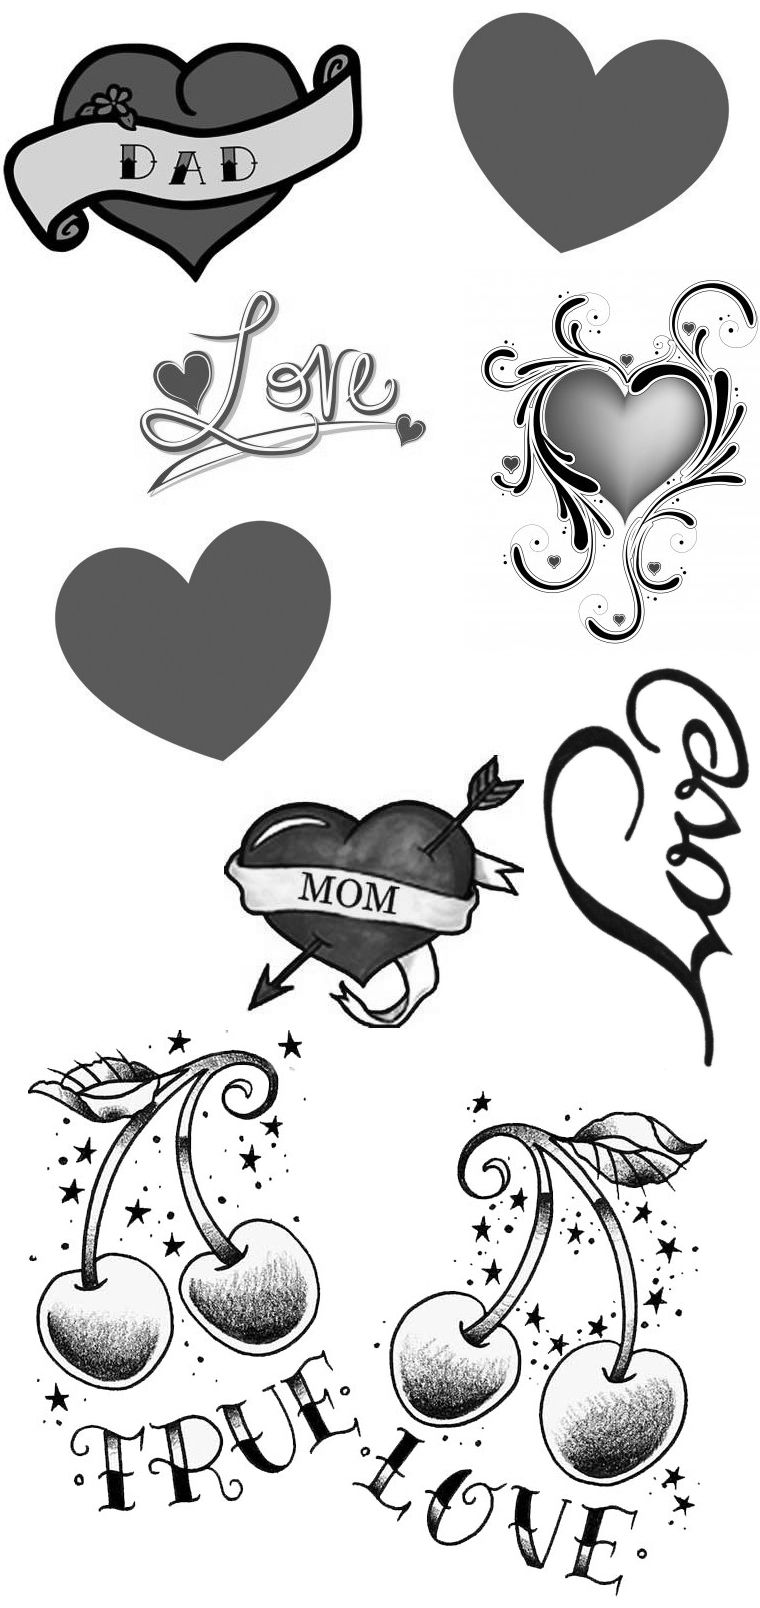 2 Love Heart Temporary Fake Tattoos Waterpoof Mom Dad affection Body ...